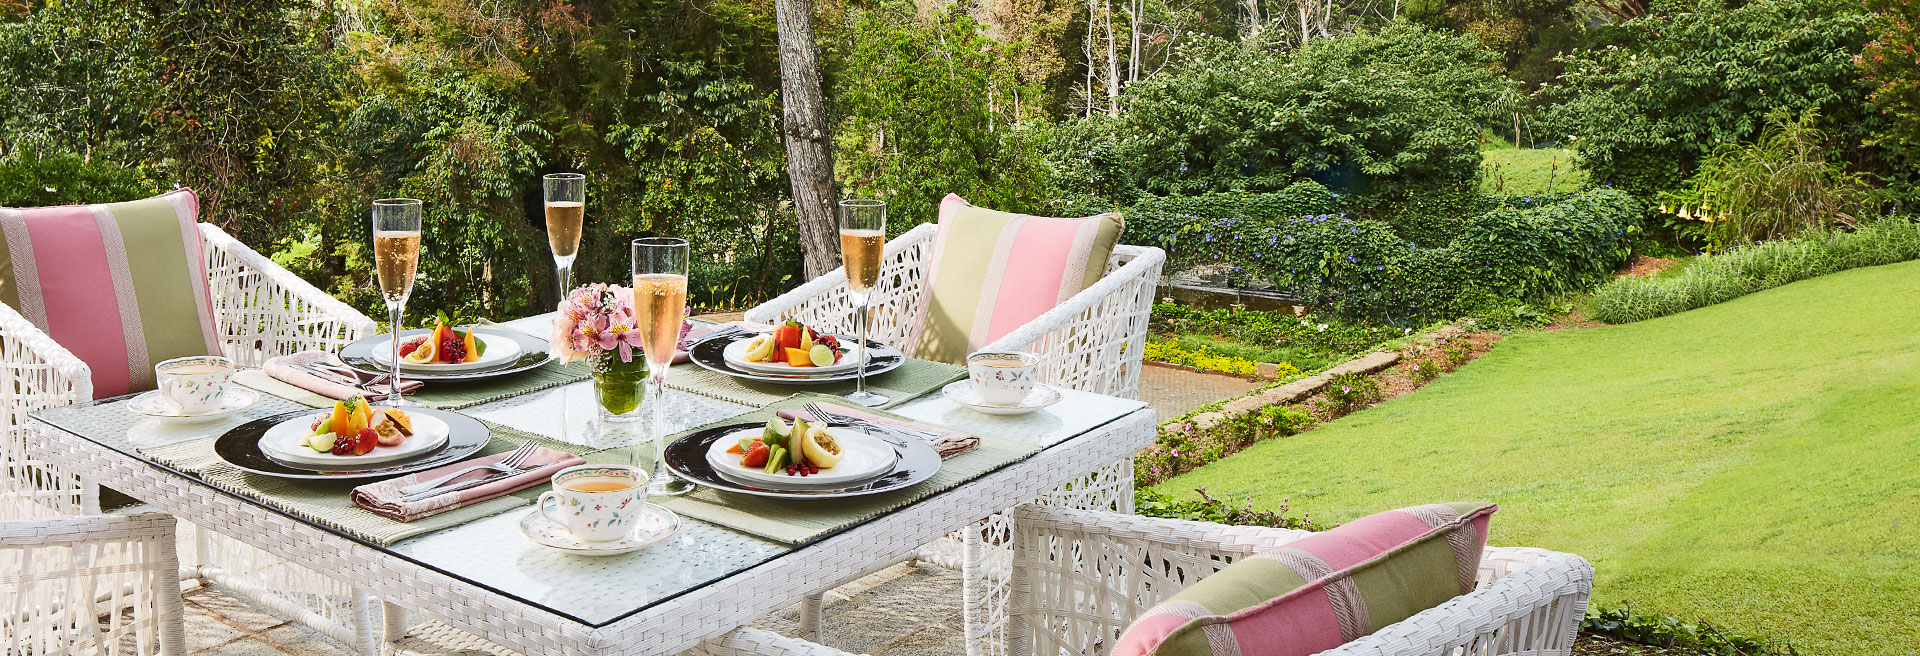 Luxurious breakfast in Nuwara Eliya